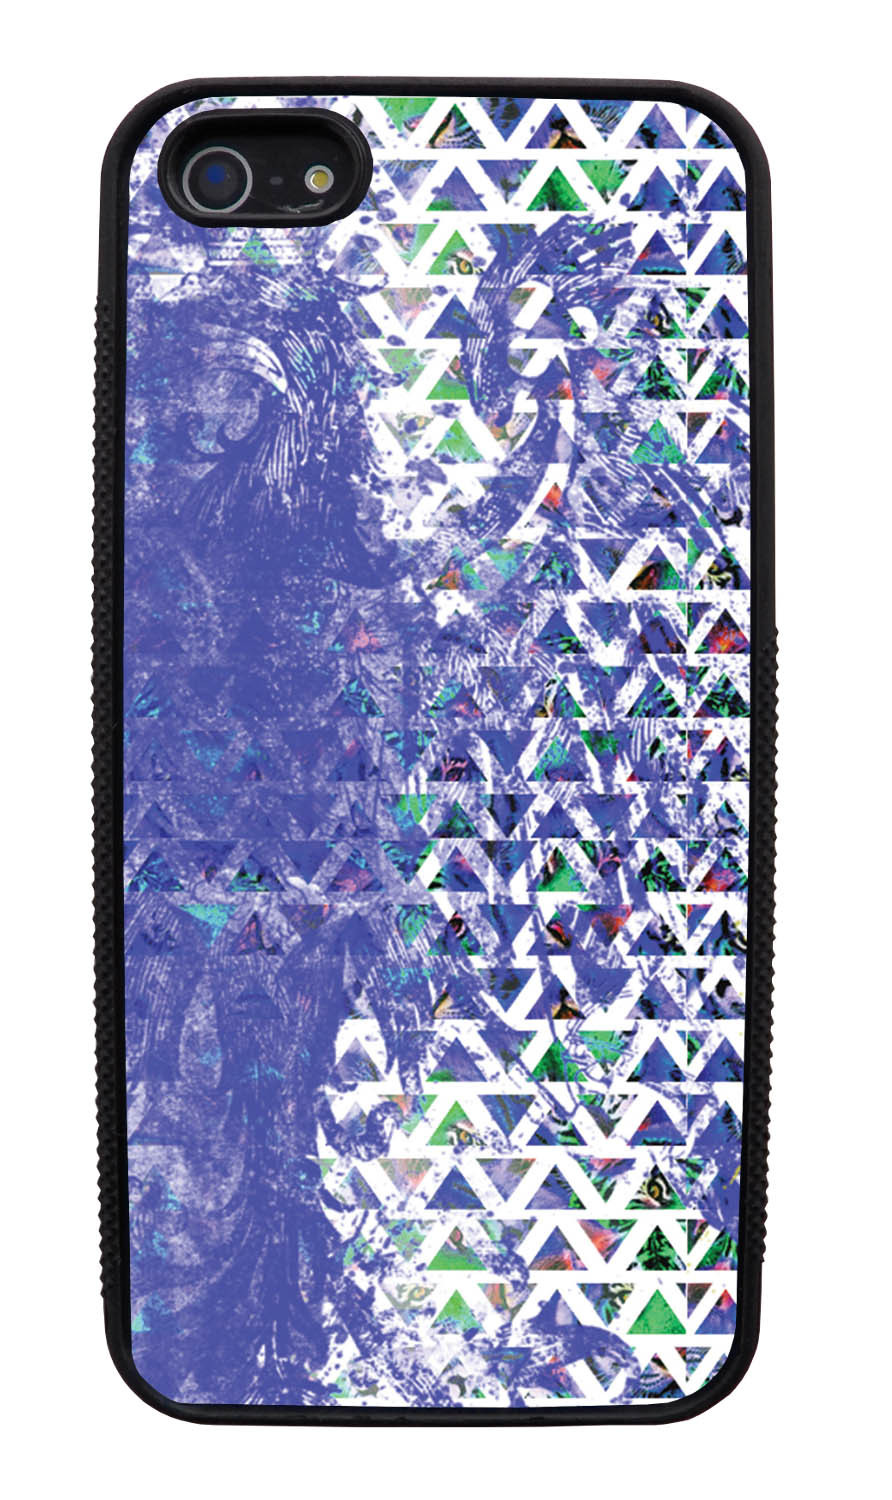 Apple iPhone 5 / 5S Aztec Case - Purple Smear Paint with Green and White - Paint Splatter Overlay - Black Slim Rubber Case